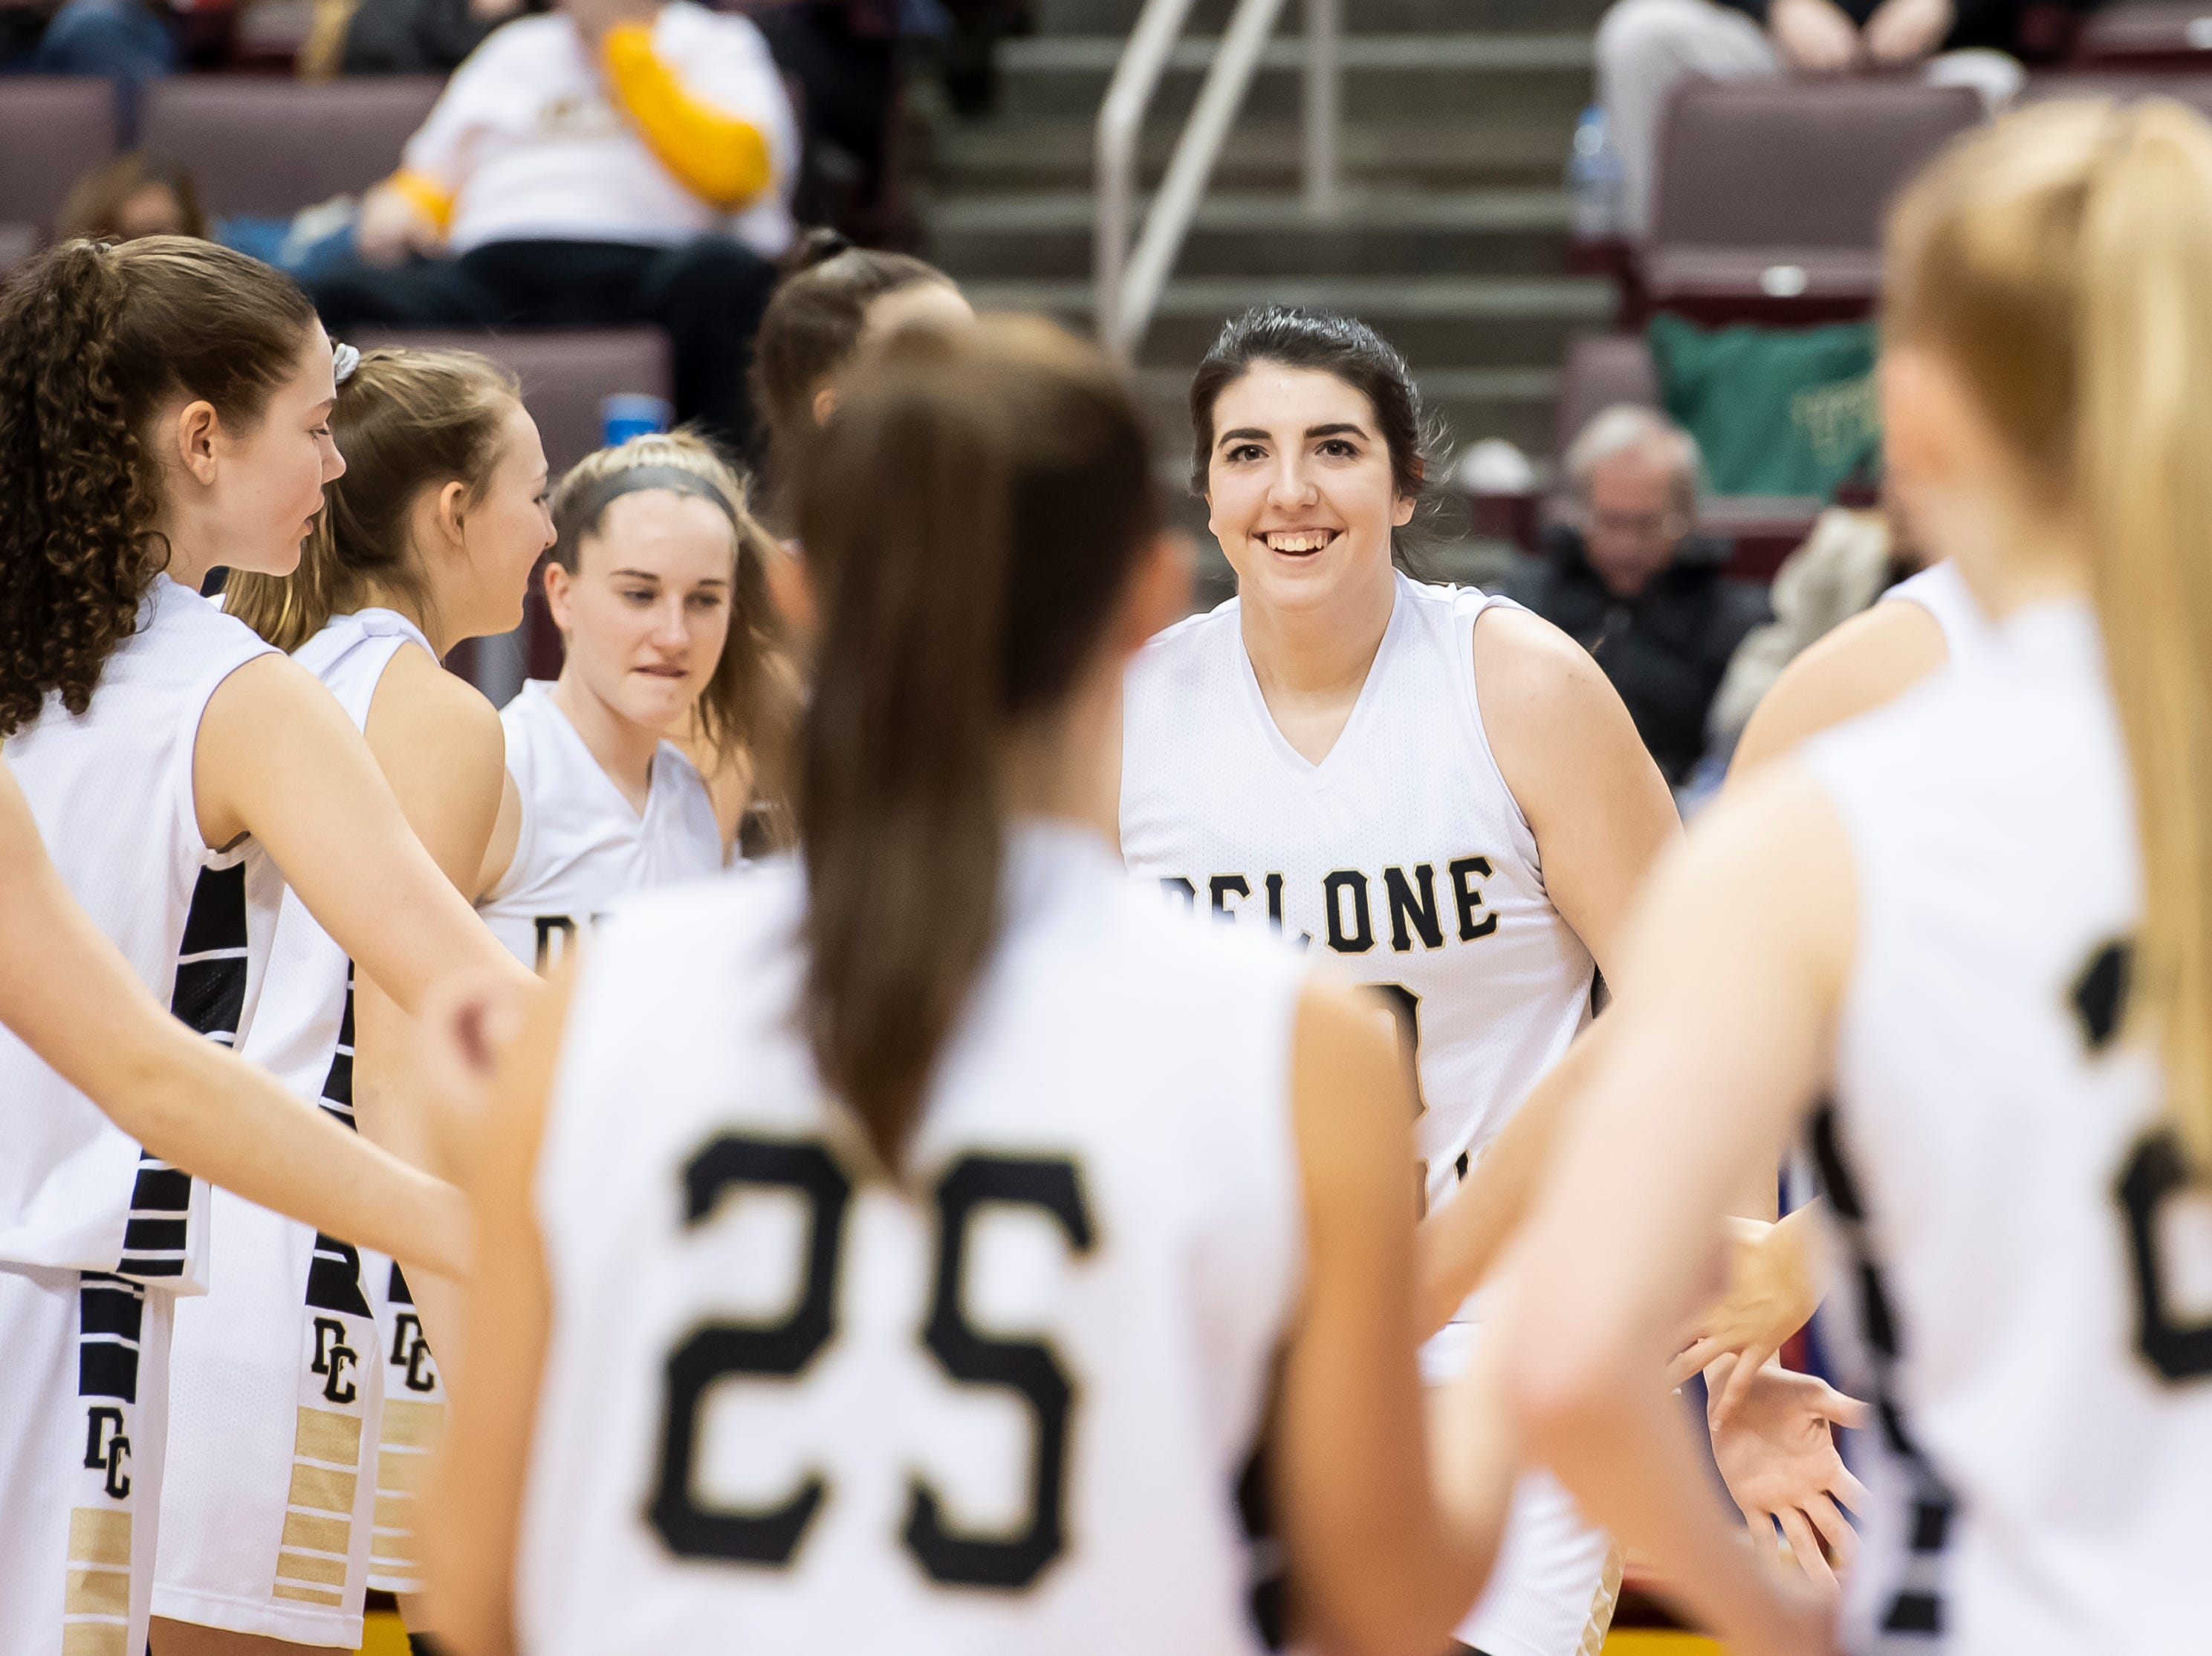 Delone Catholic's Bradi Zumbrum is introduced during the starting lineups before the District 3 3A girls championship game against Trinity at the Giant Center in Hershey Wednesday, Feb. 27, 2019. The Squirettes fell 44-33.